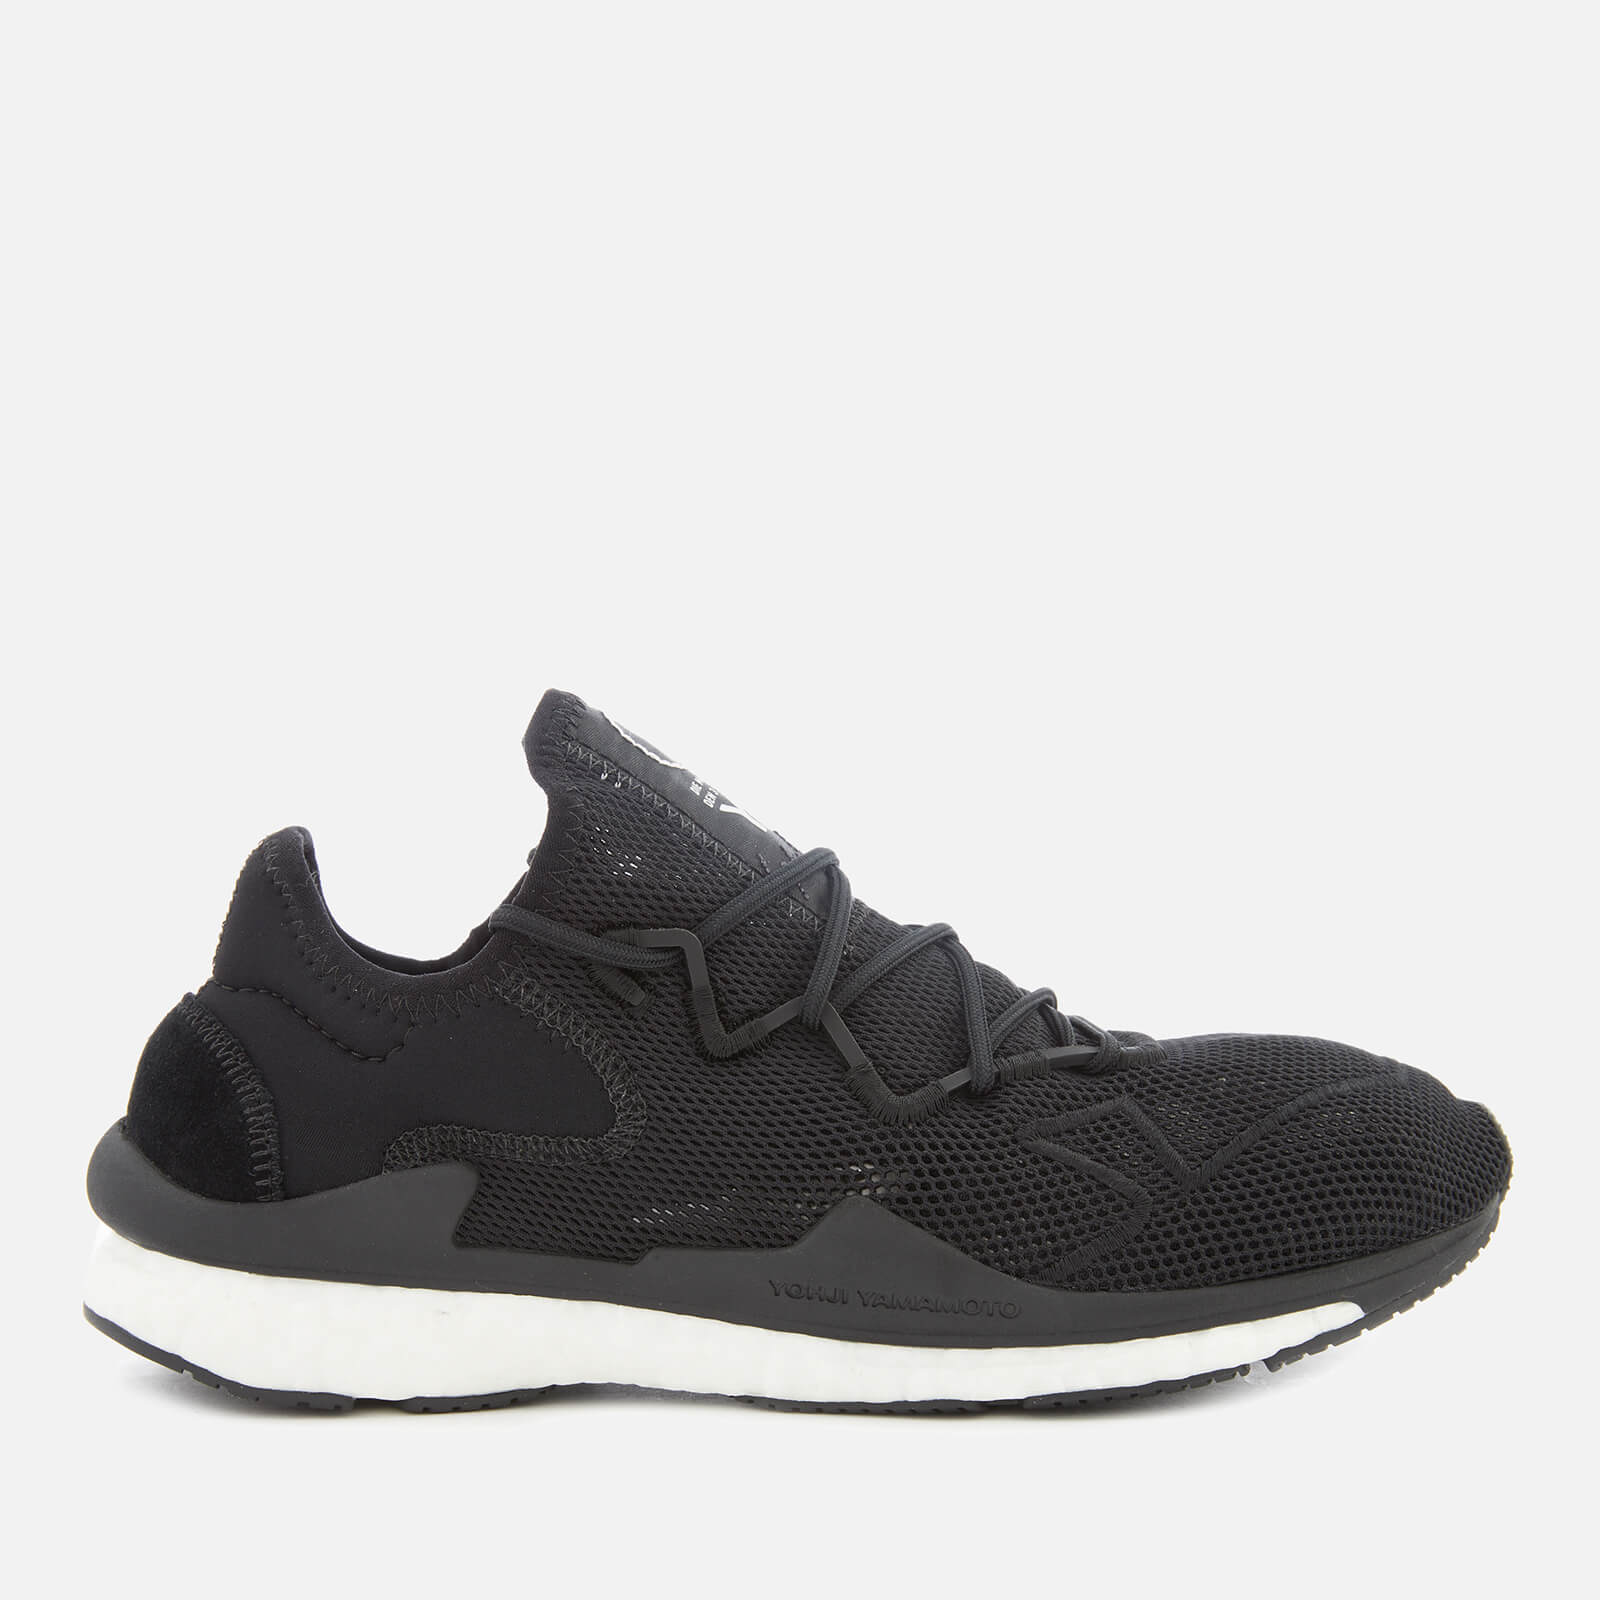 best service 1d745 00466 Y-3 Men s Adizero Runner Trainers - Black - Y3 - Free UK Delivery over £50